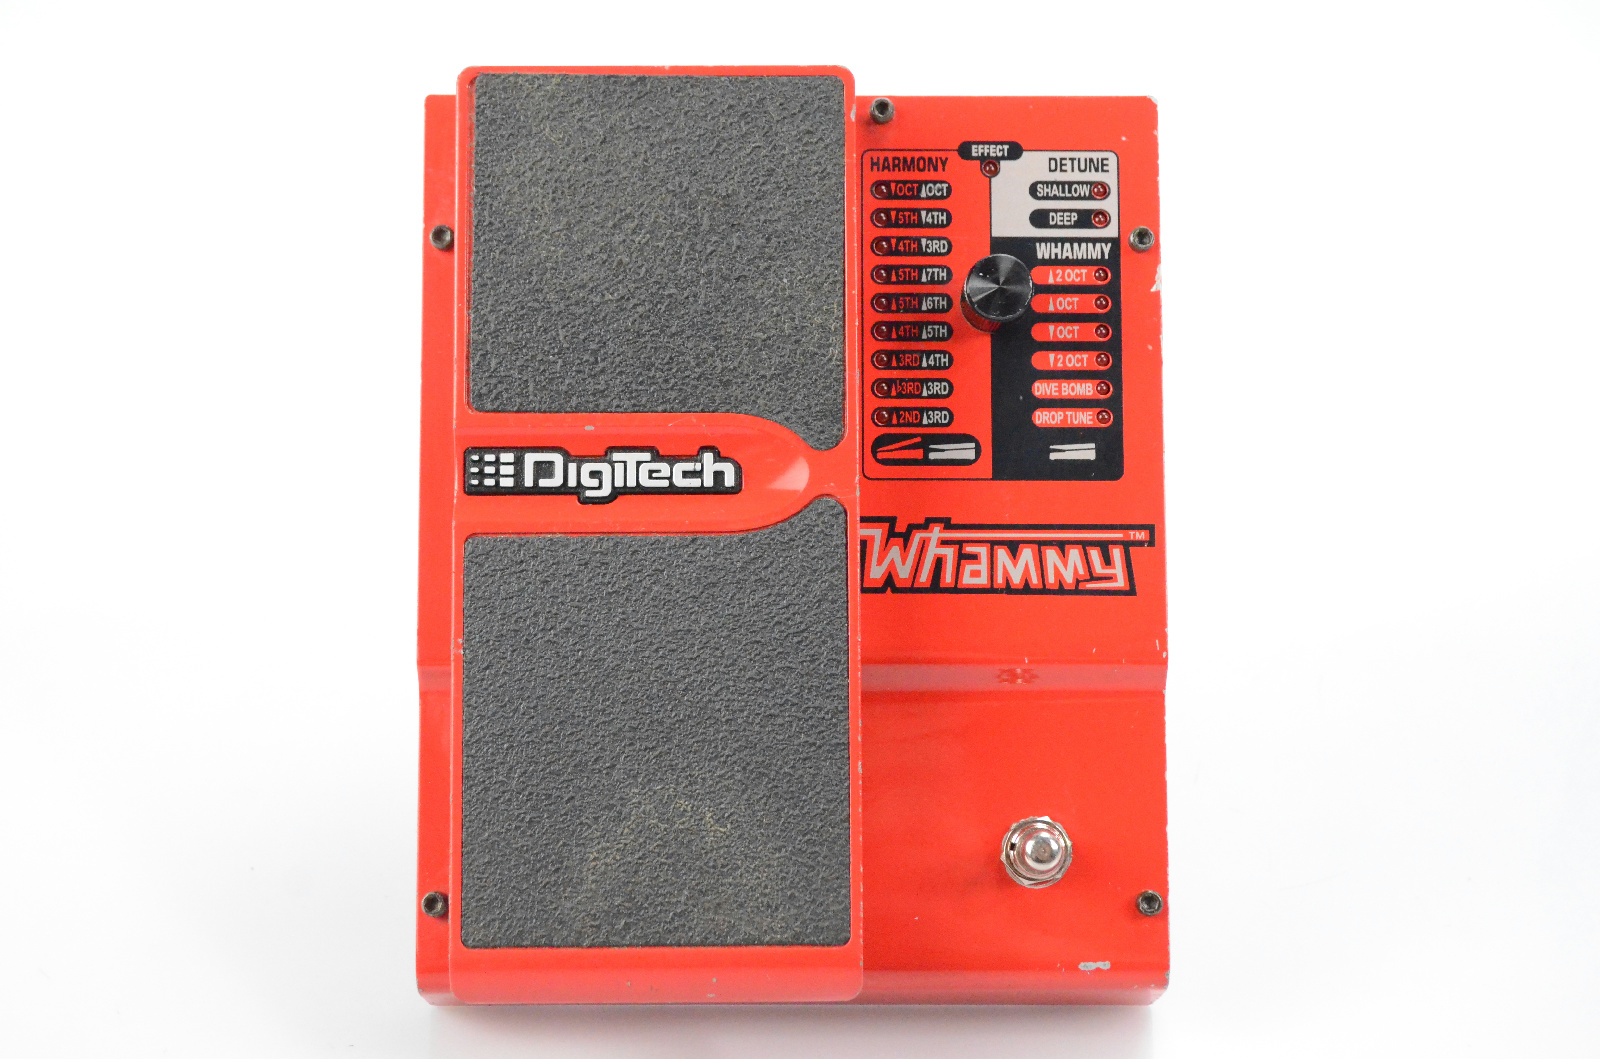 Digitech Whammy IV 4th Generation Guitar Effect Pedal Owned by Papa Roach #33225